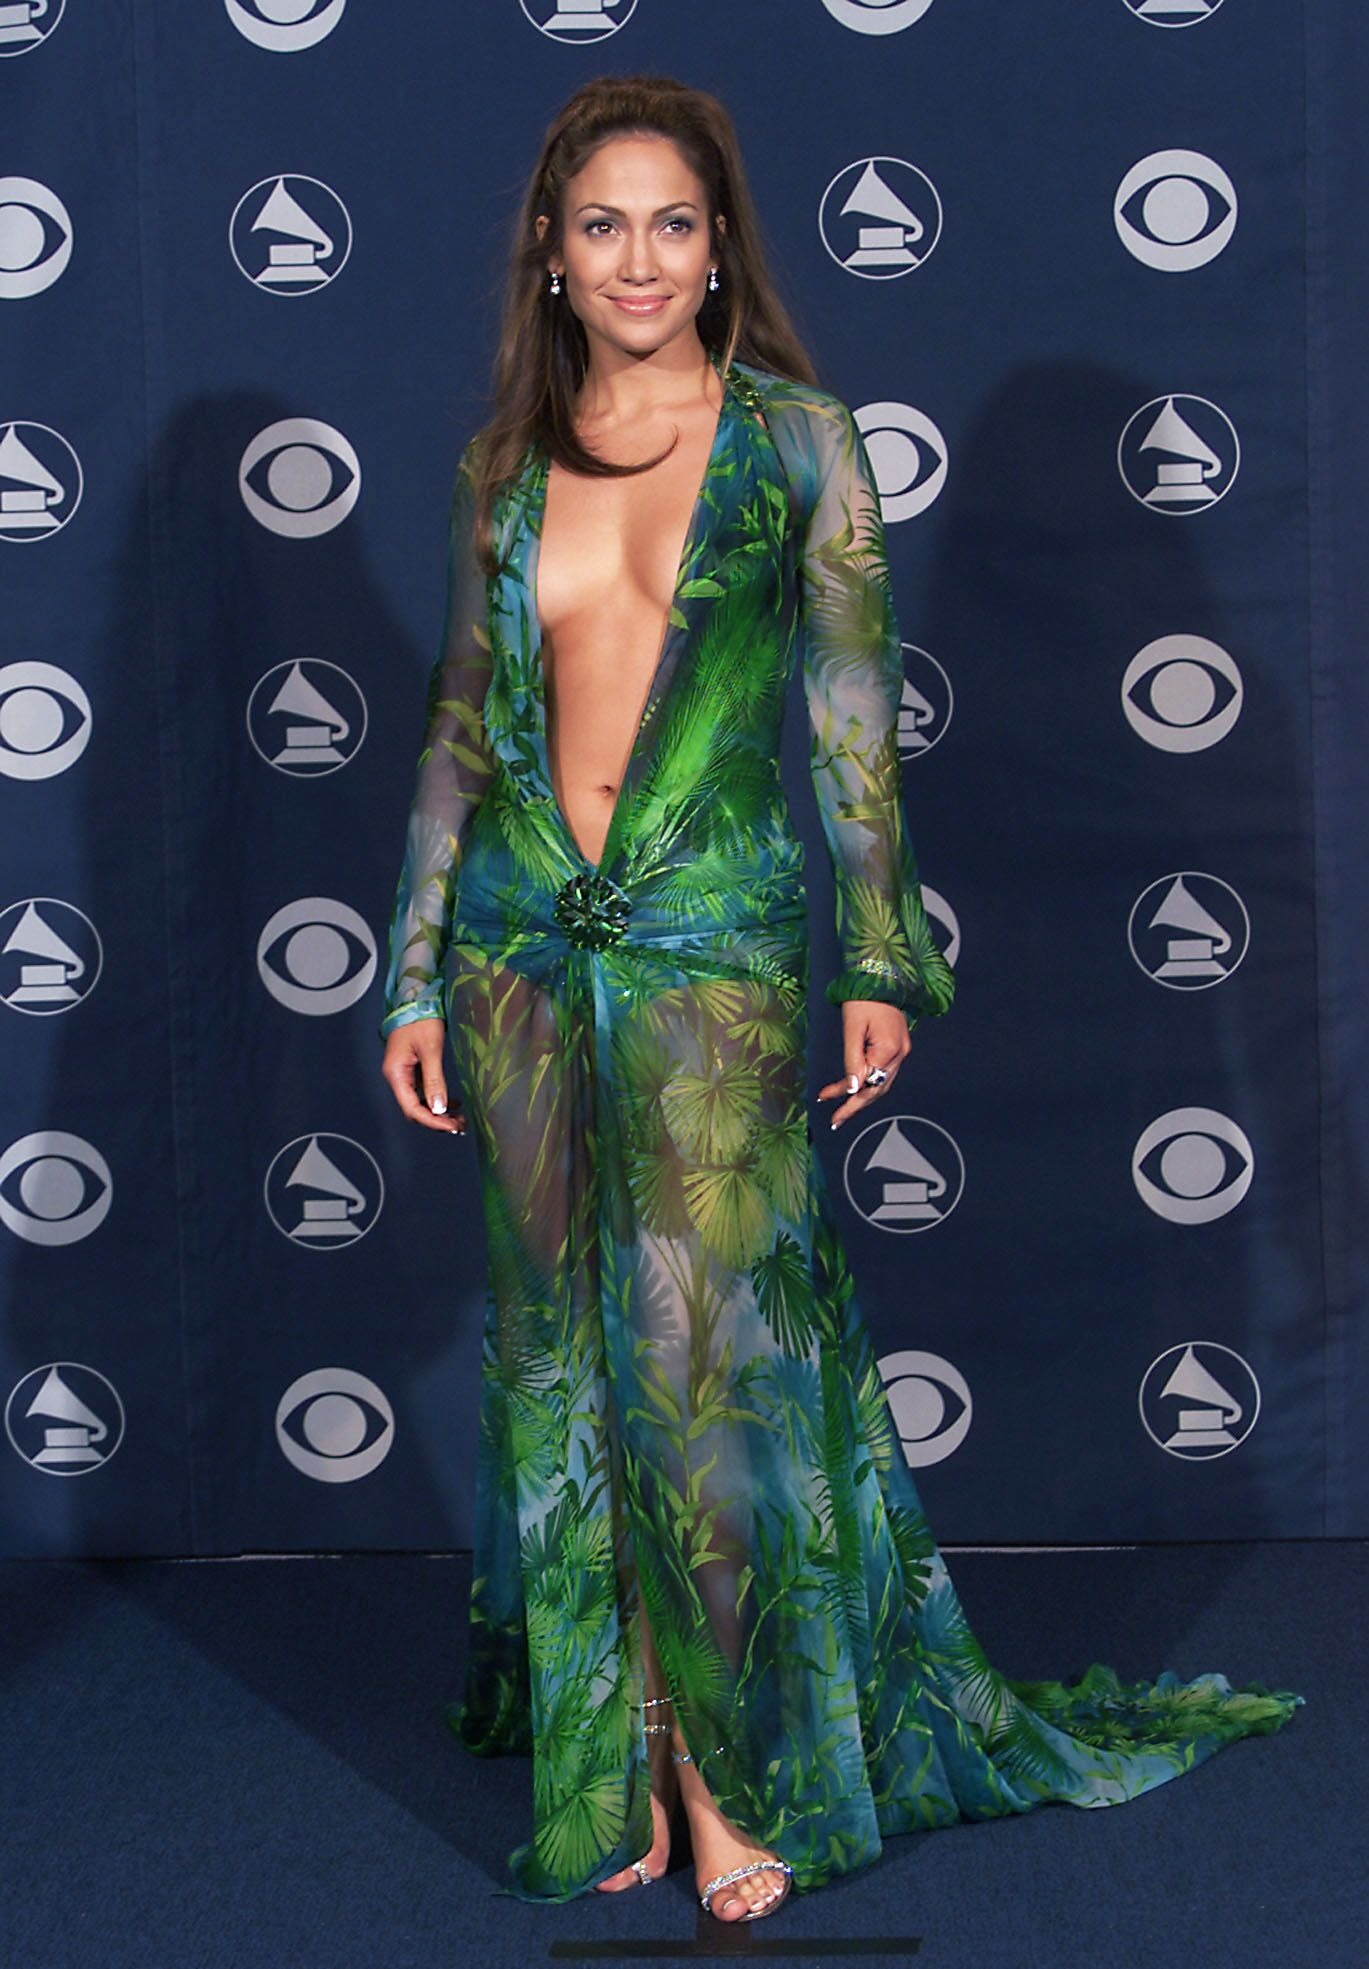 Versace x Chain Reaction take inspiration from J-Lo dress